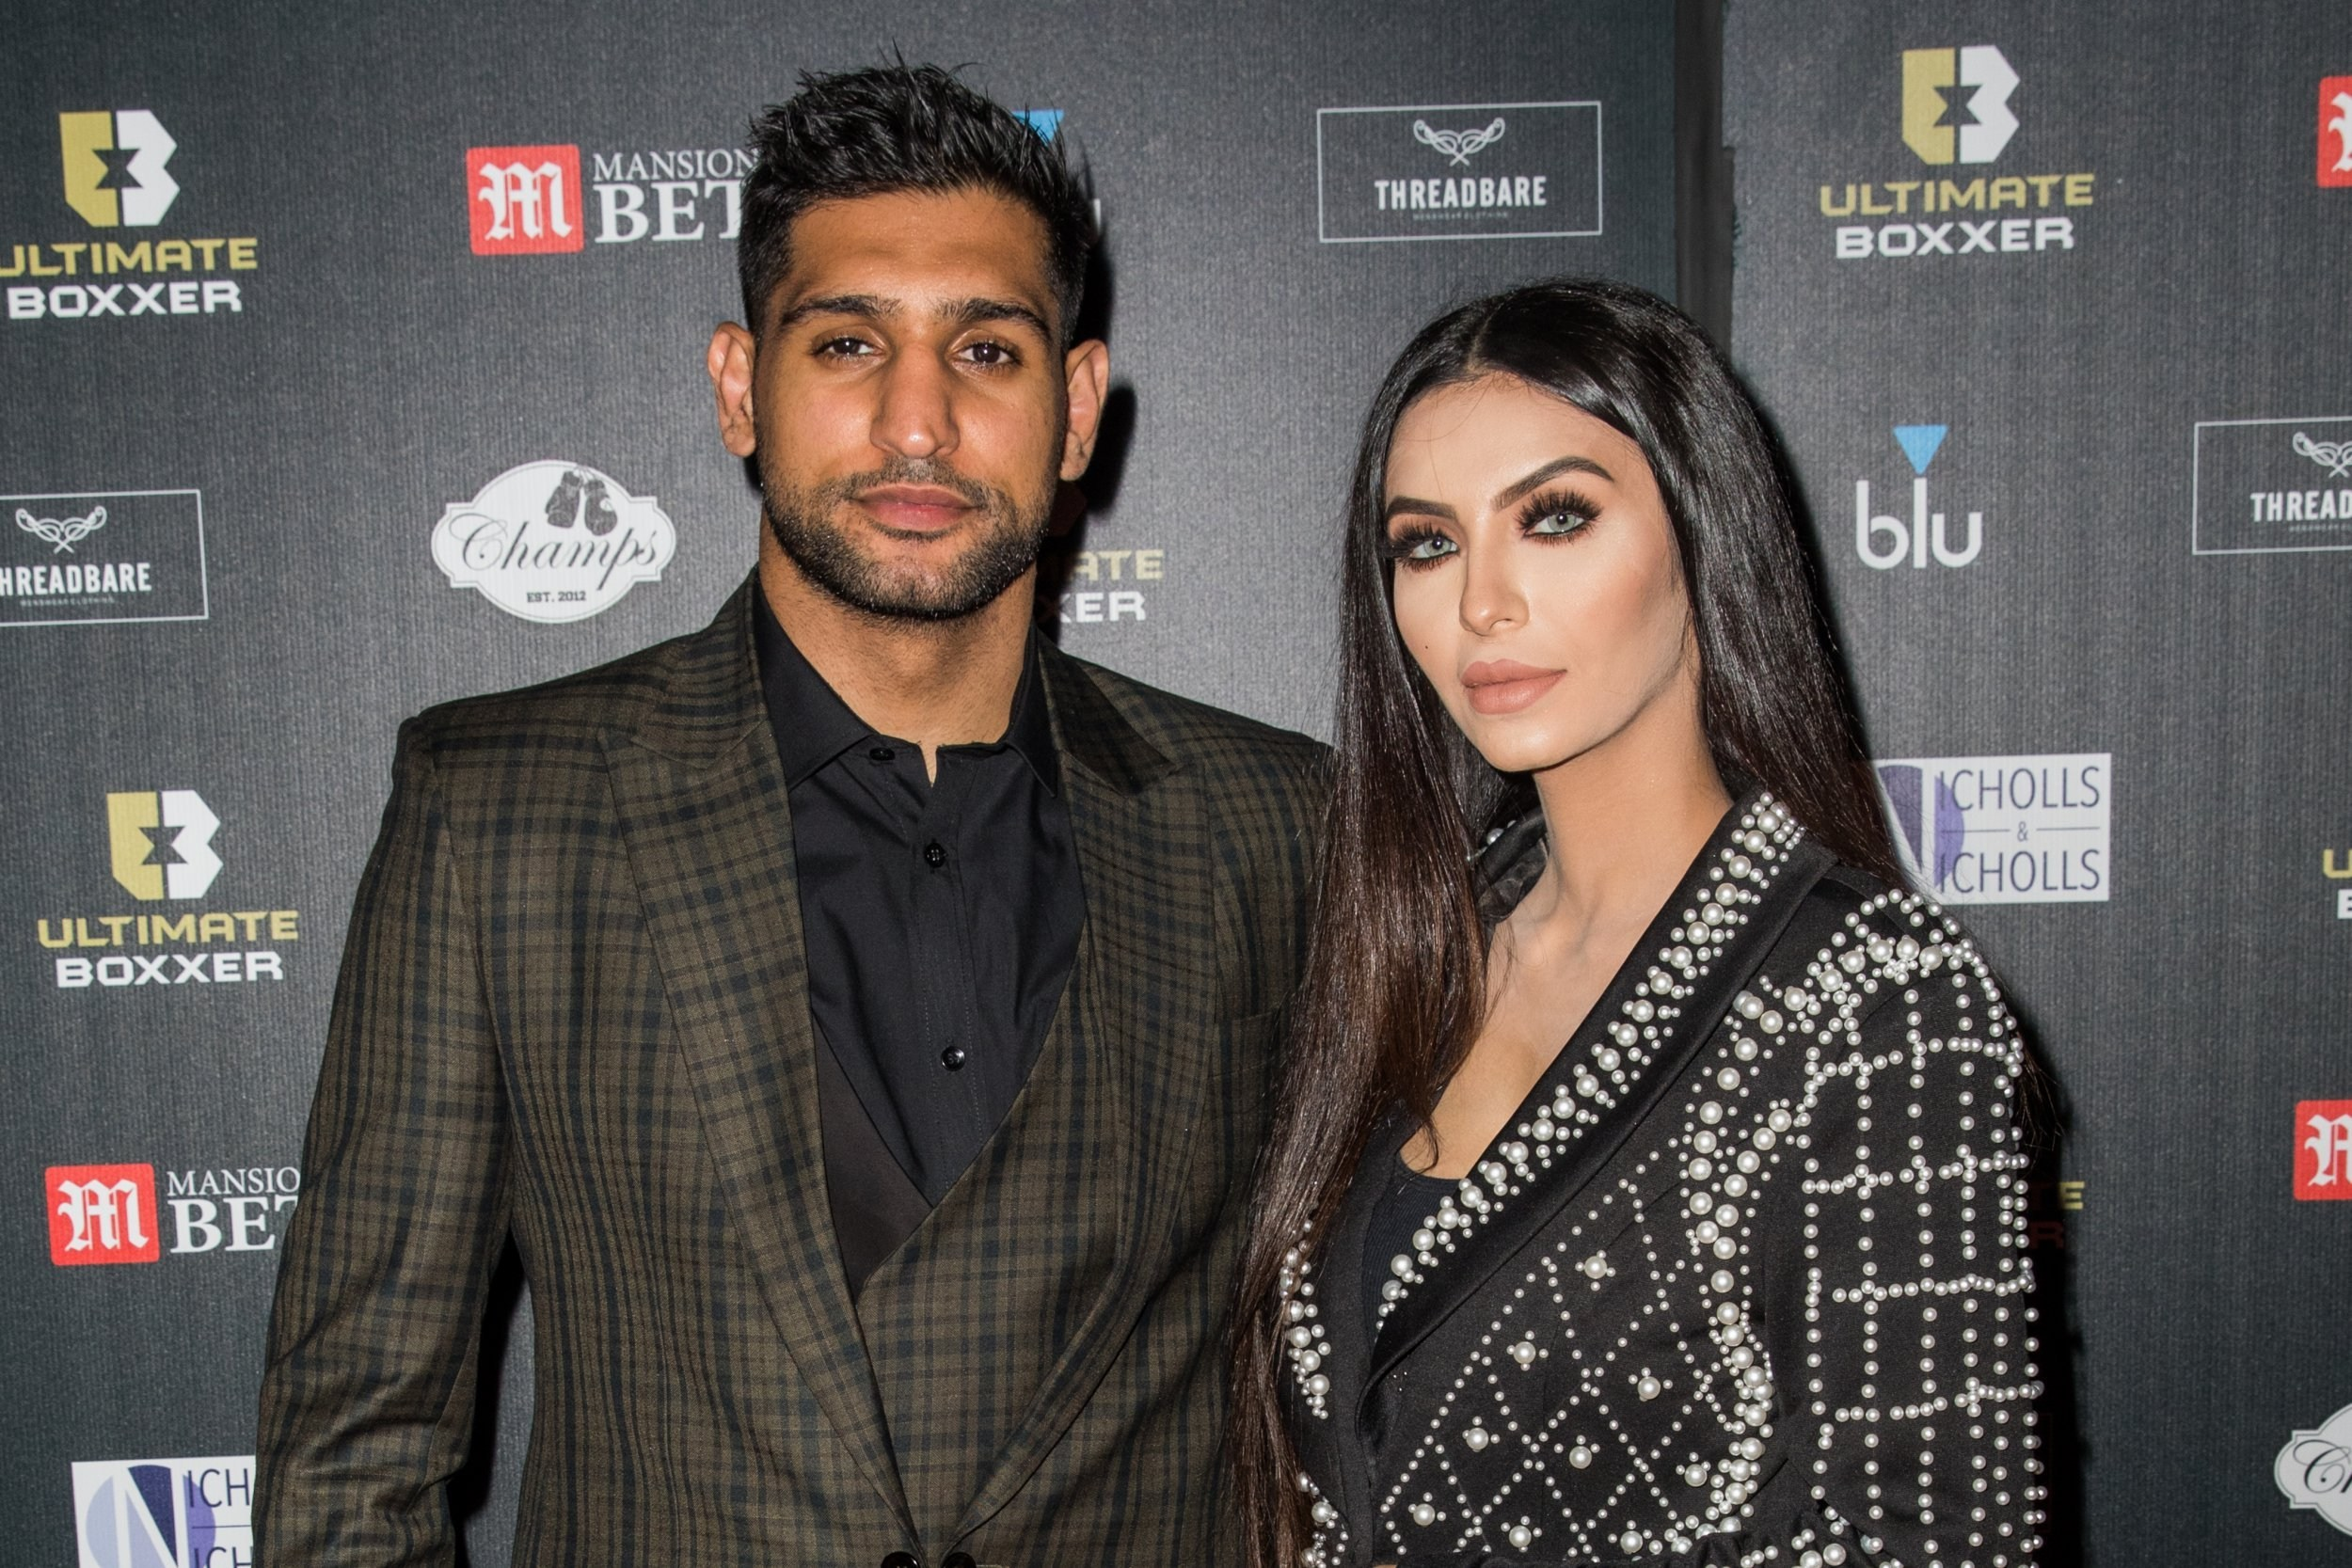 Coronavirus: Faryal Makhdoom urges celebrities to step up for healthcare staff during pandemic